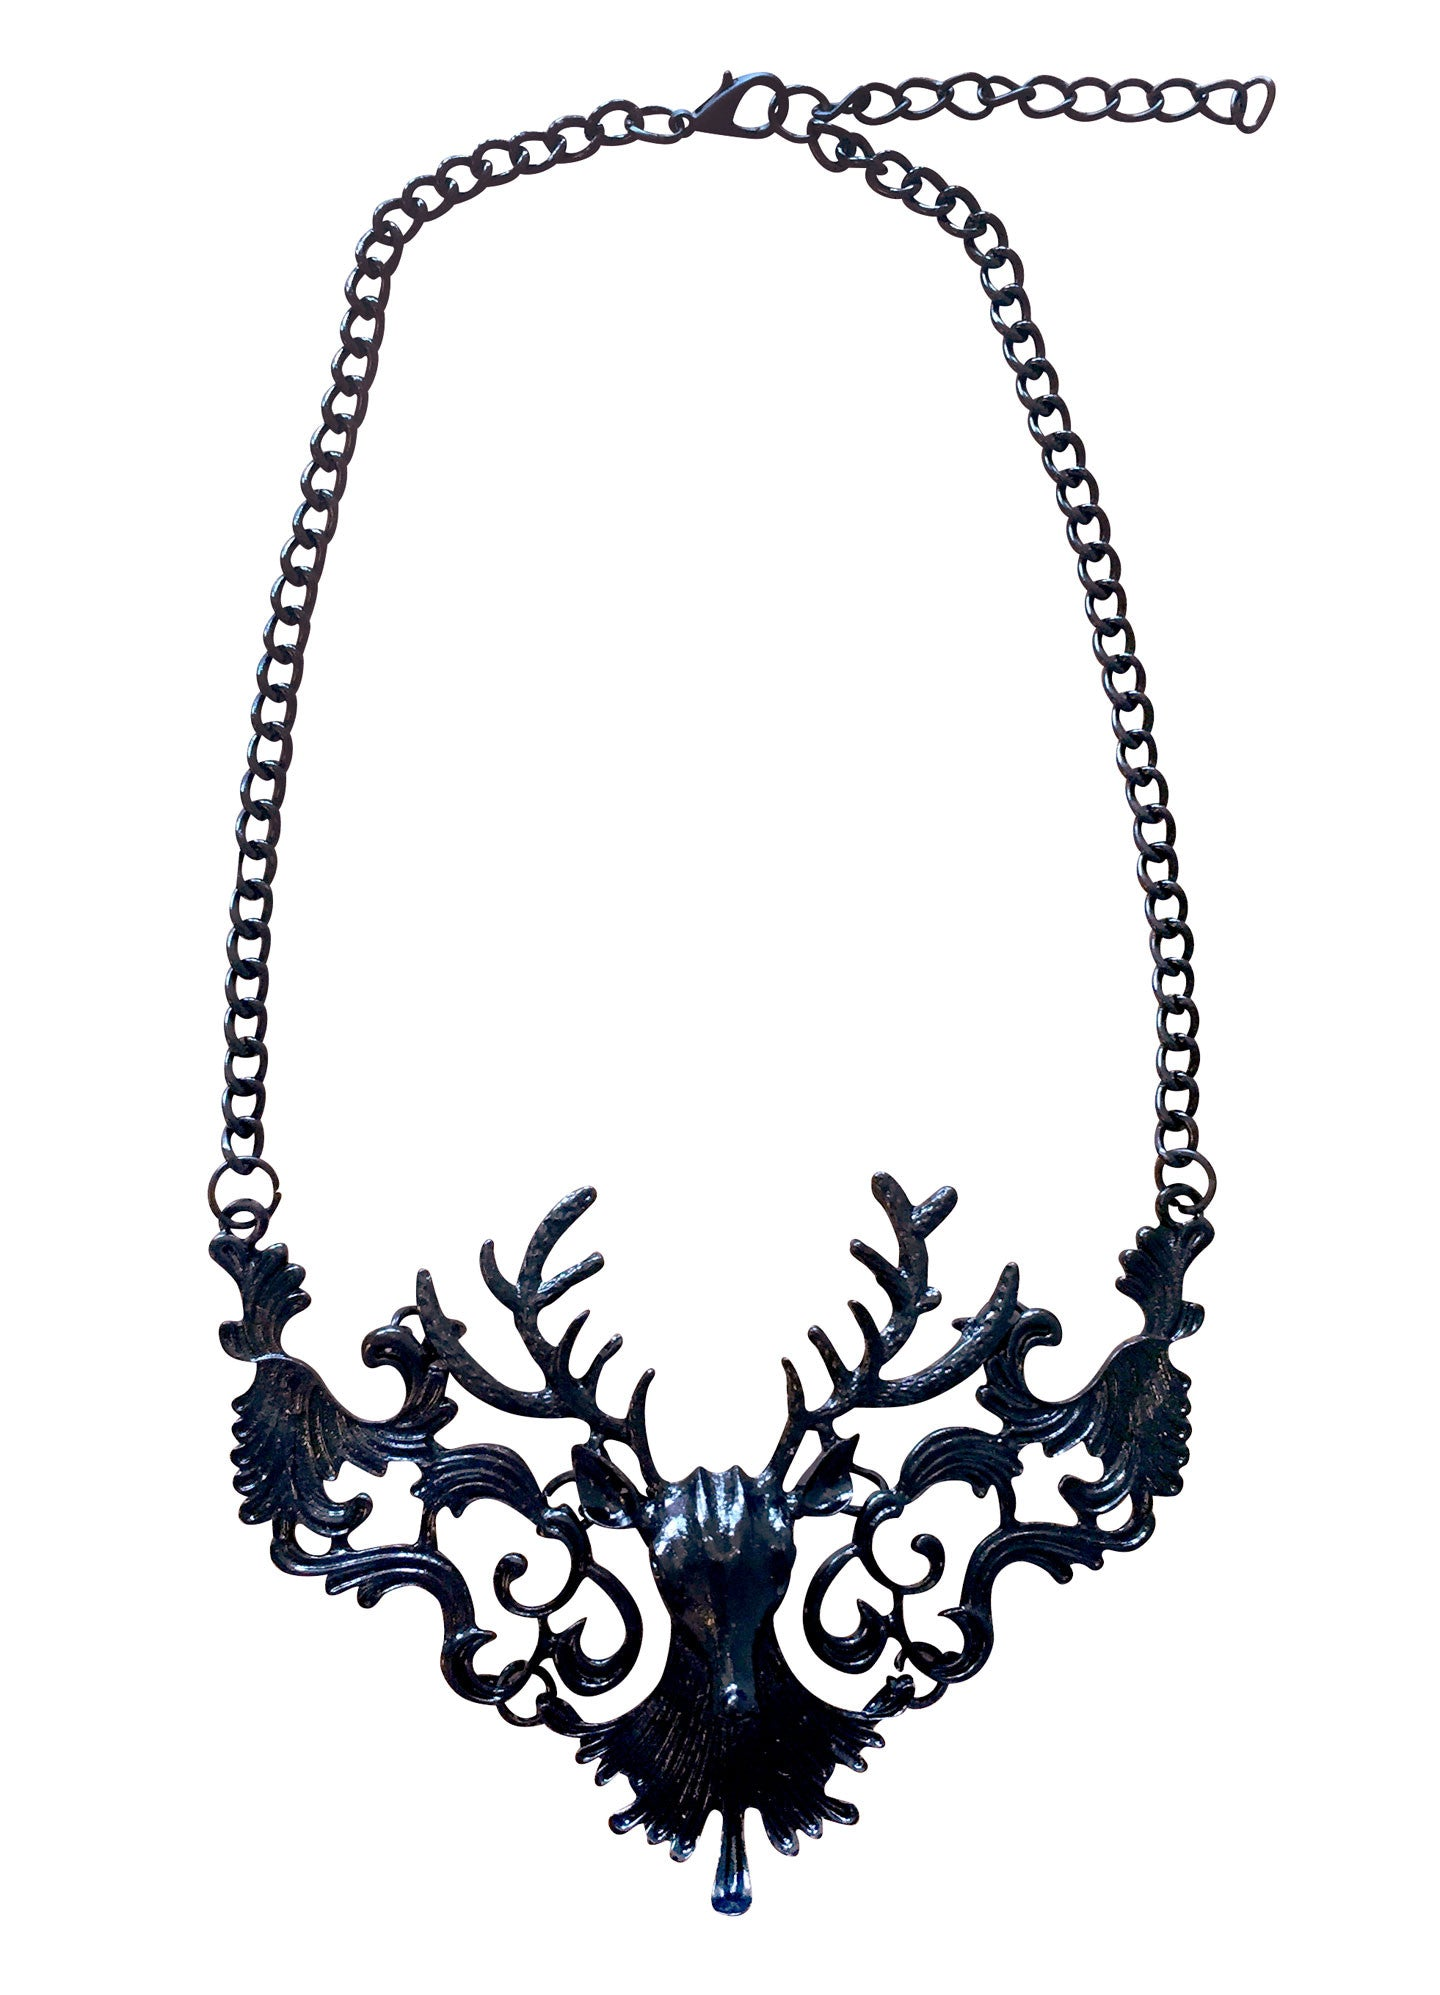 The Ultimate Hirsch Necklace